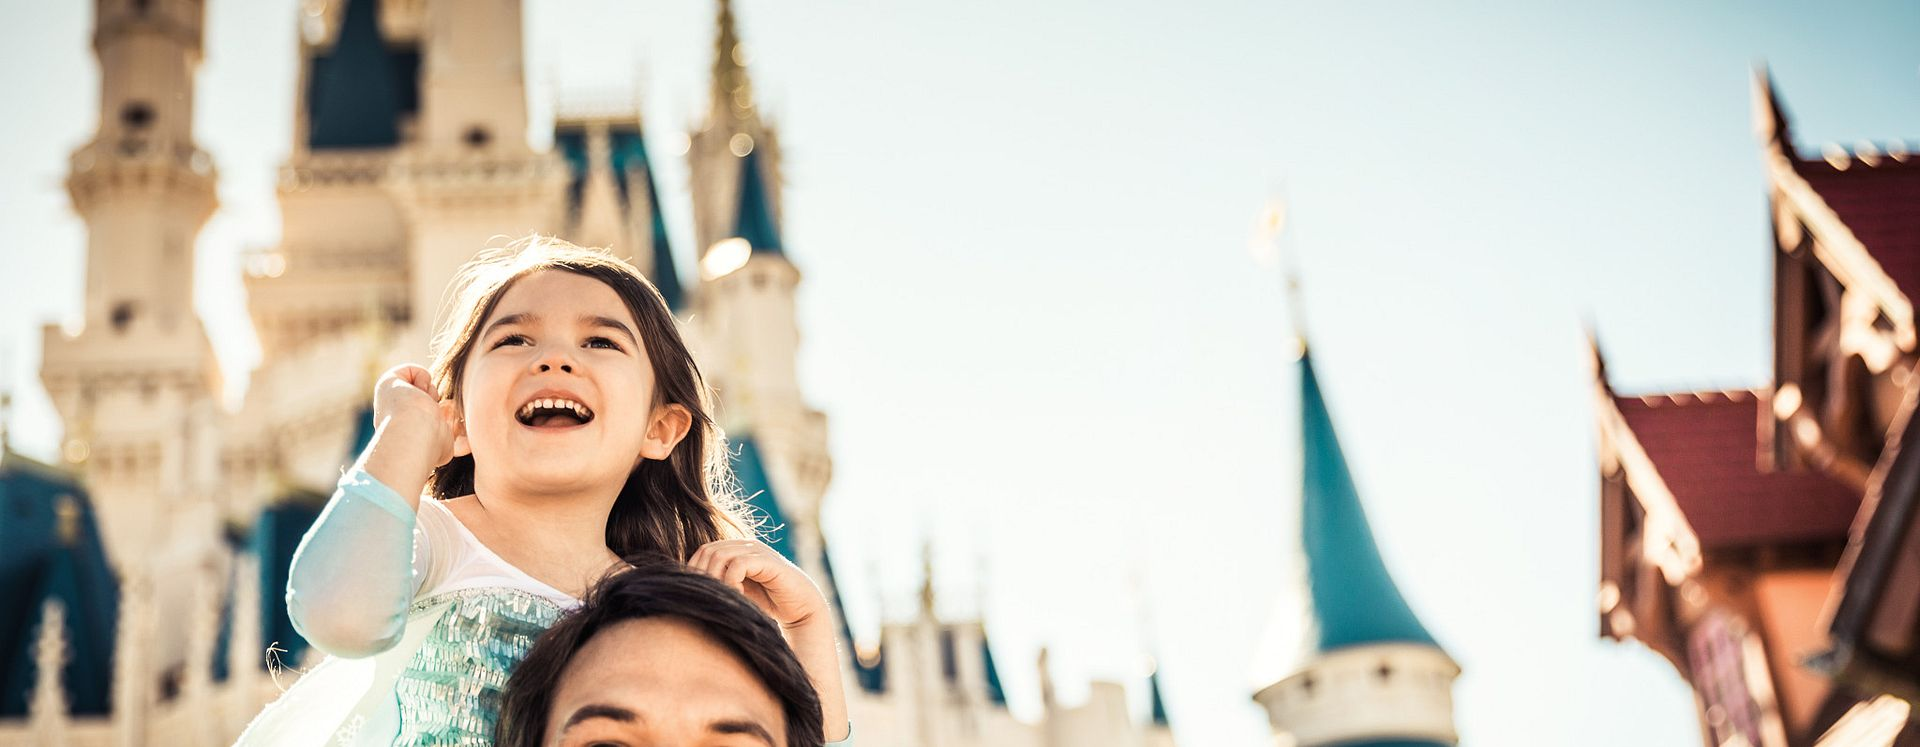 Young girl dressed as a princess and riding on her father's shoulders with the castle in the background at Walt Disney World